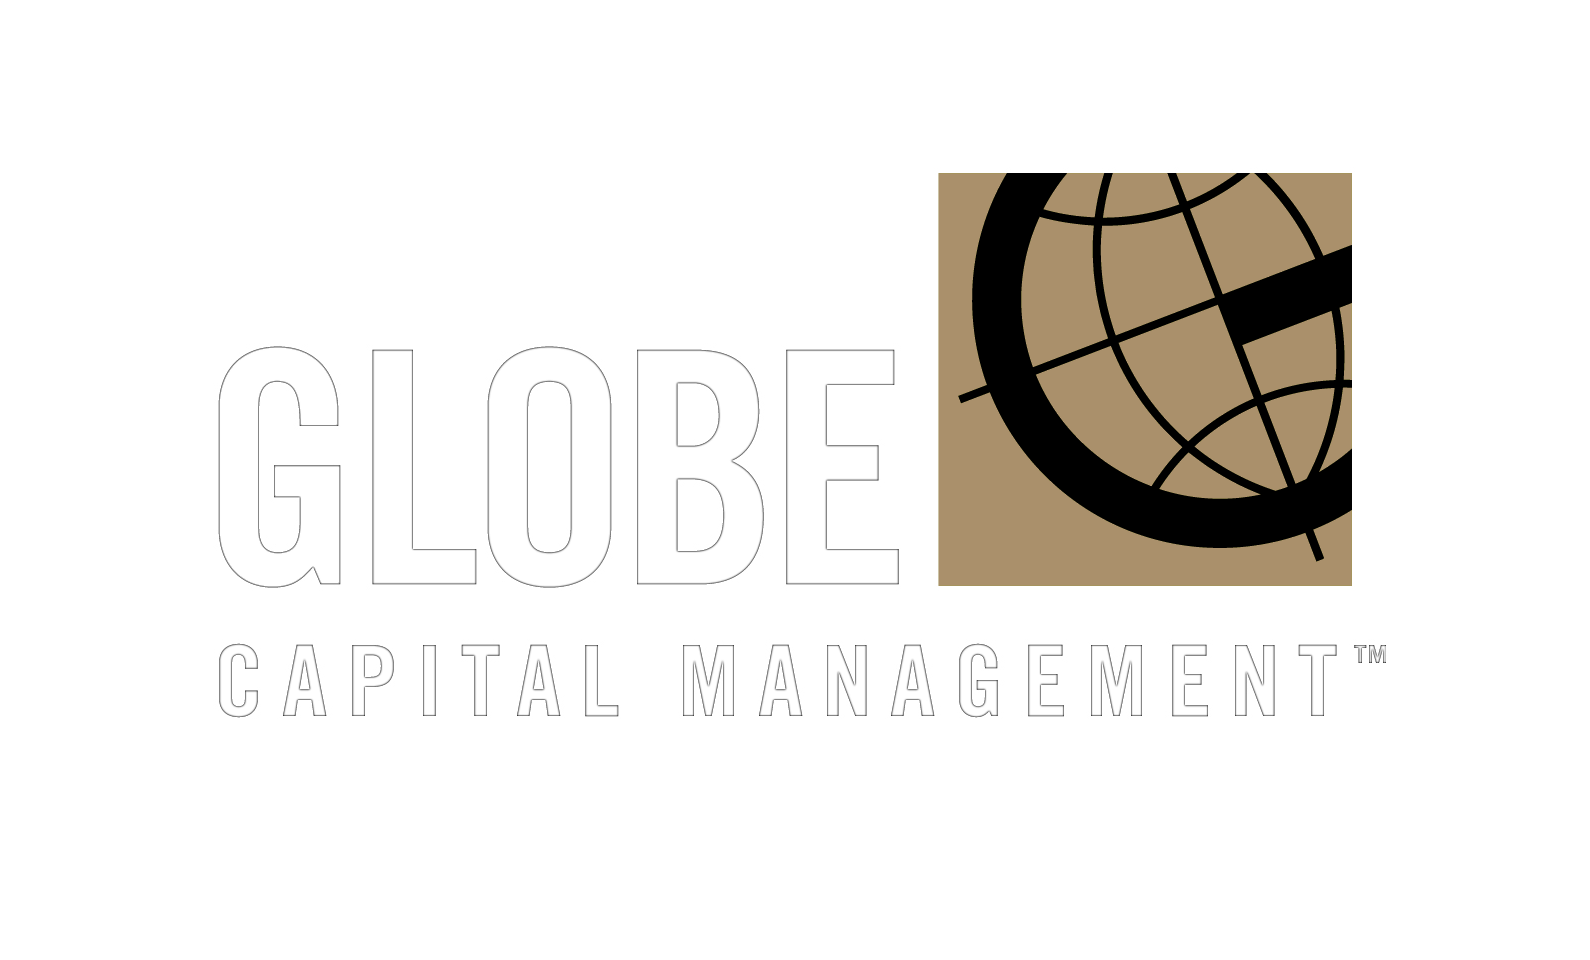 Globe Capital Management